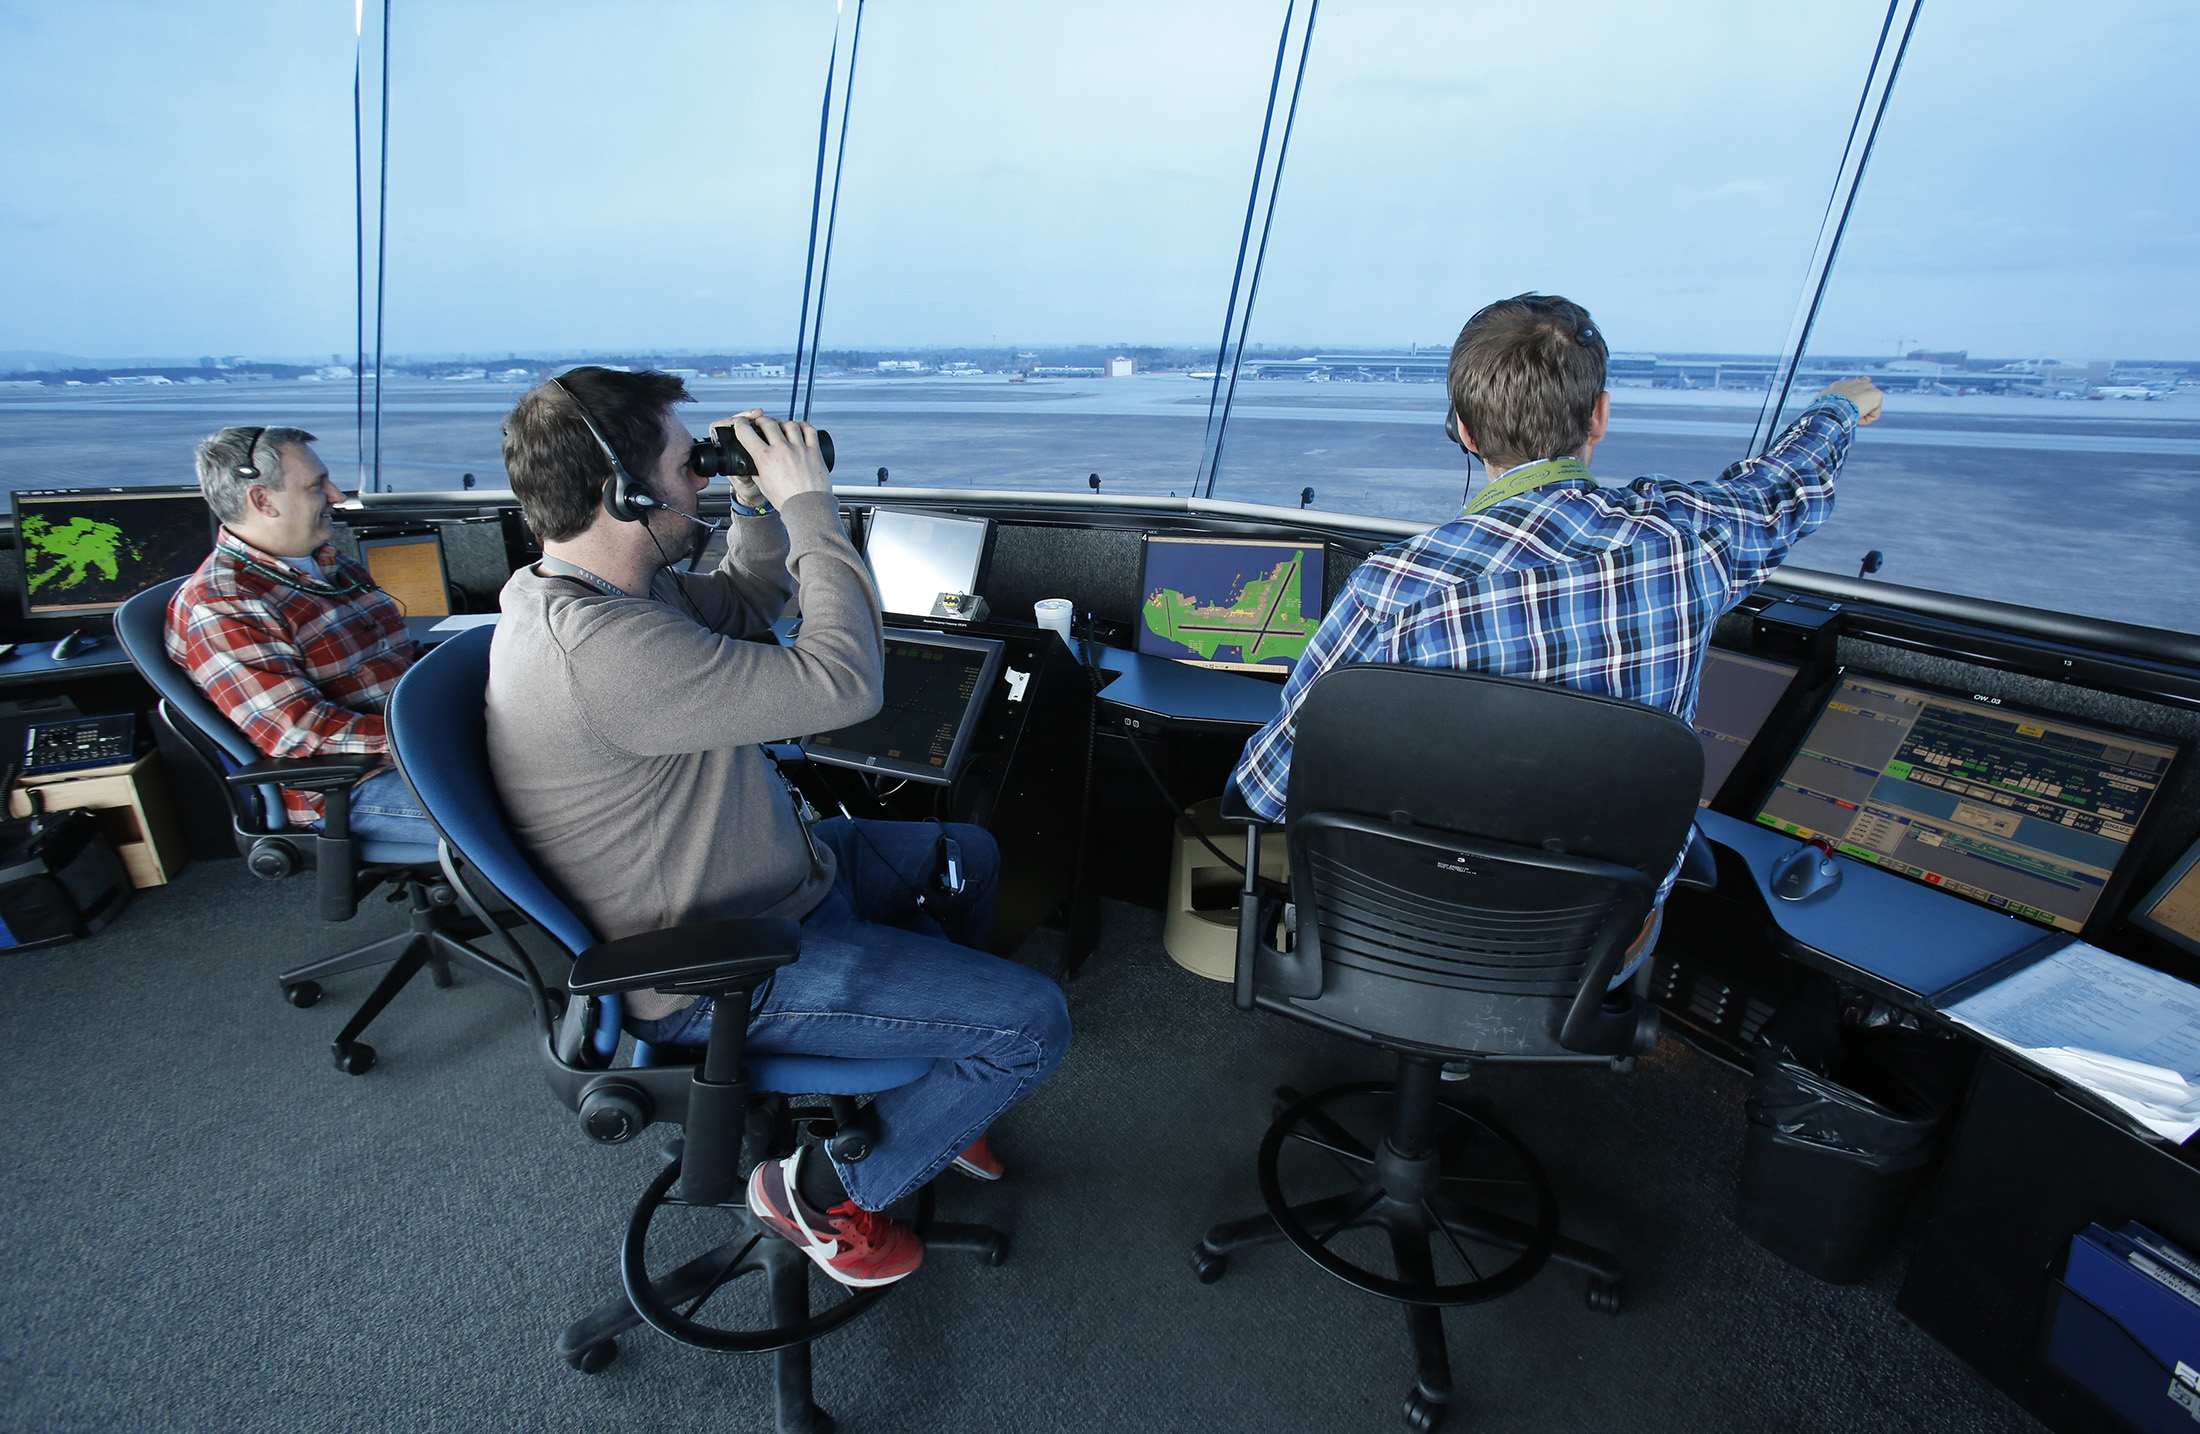 Air traffic controllers direct airport traffic at the Nav Canada tower at the Ottawa International Airport in Ottawa, Ontario, Canada on Wednesday, April 6, 2016. Photographer: Patrick Doyle/Bloomberg